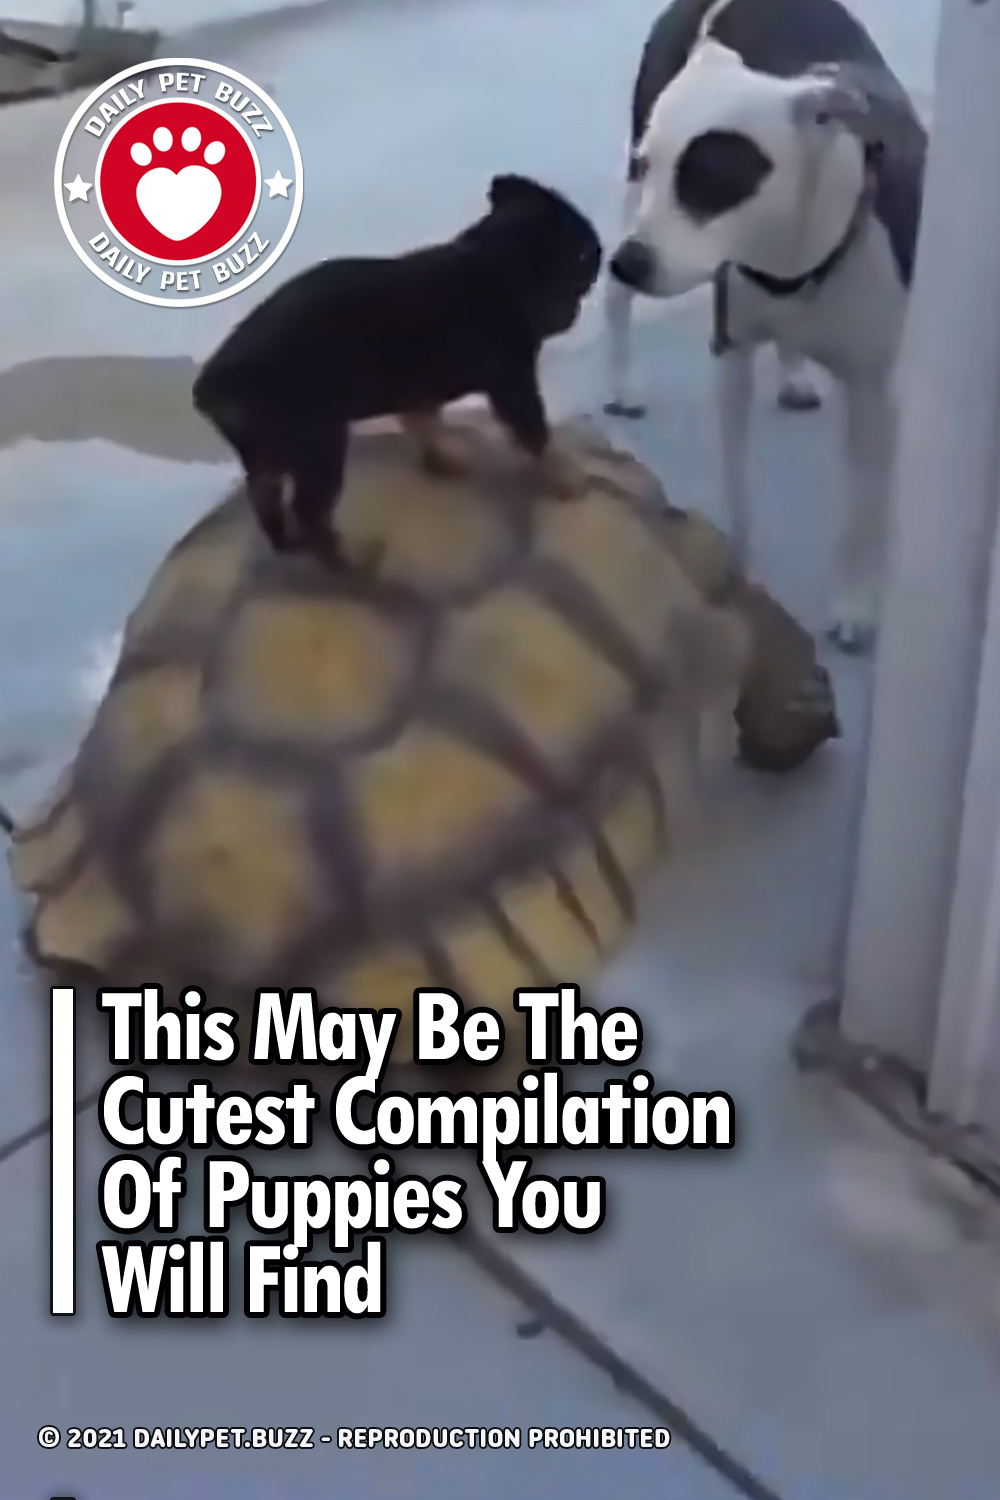 This May Be The Cutest Compilation Of Puppies You Will Find